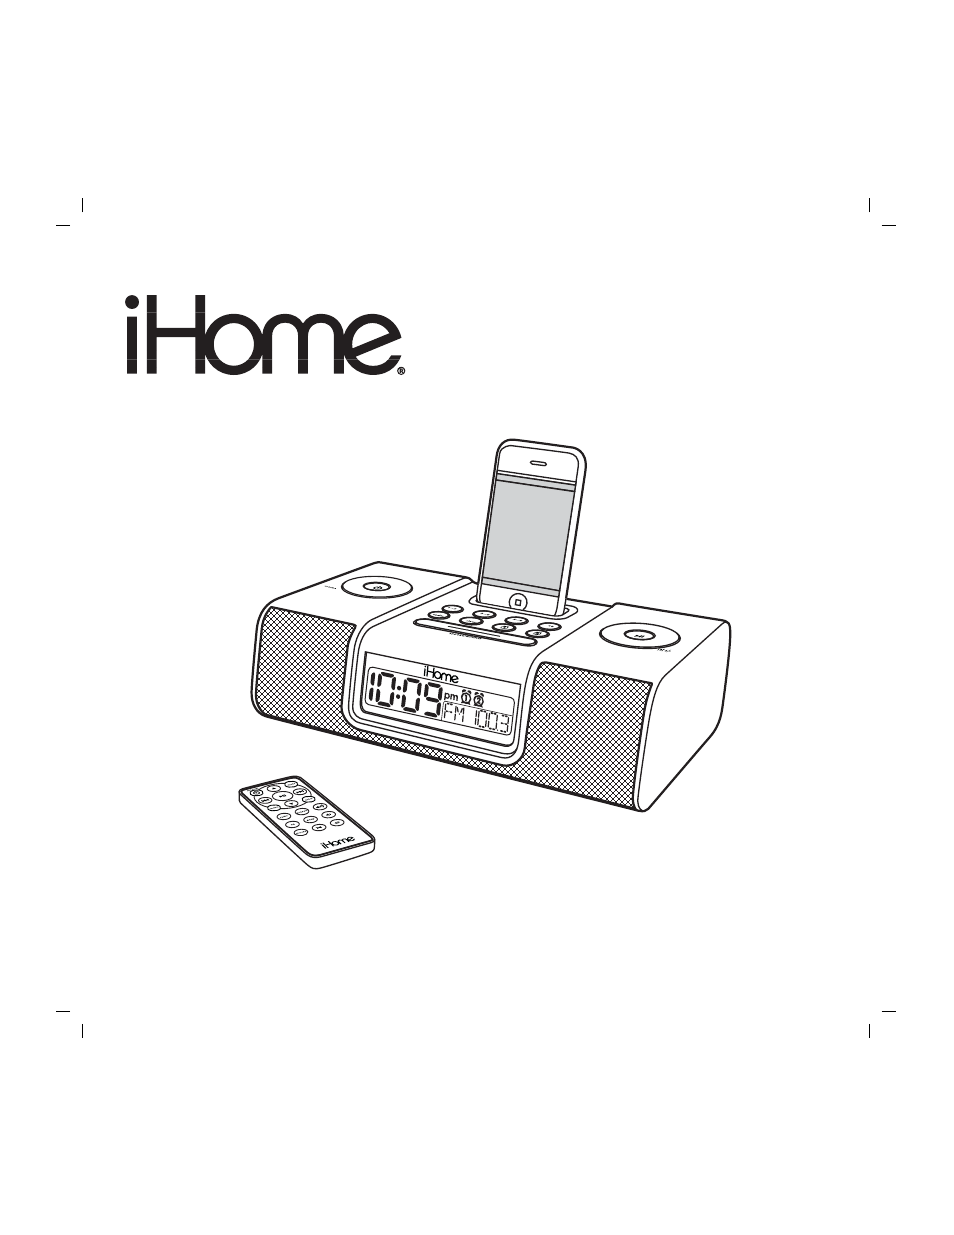 Ihome ip9 manual ebook array ihome model ip9 owners manual professional user manual ebooks u2022 rh gogradresumes com fandeluxe Choice Image